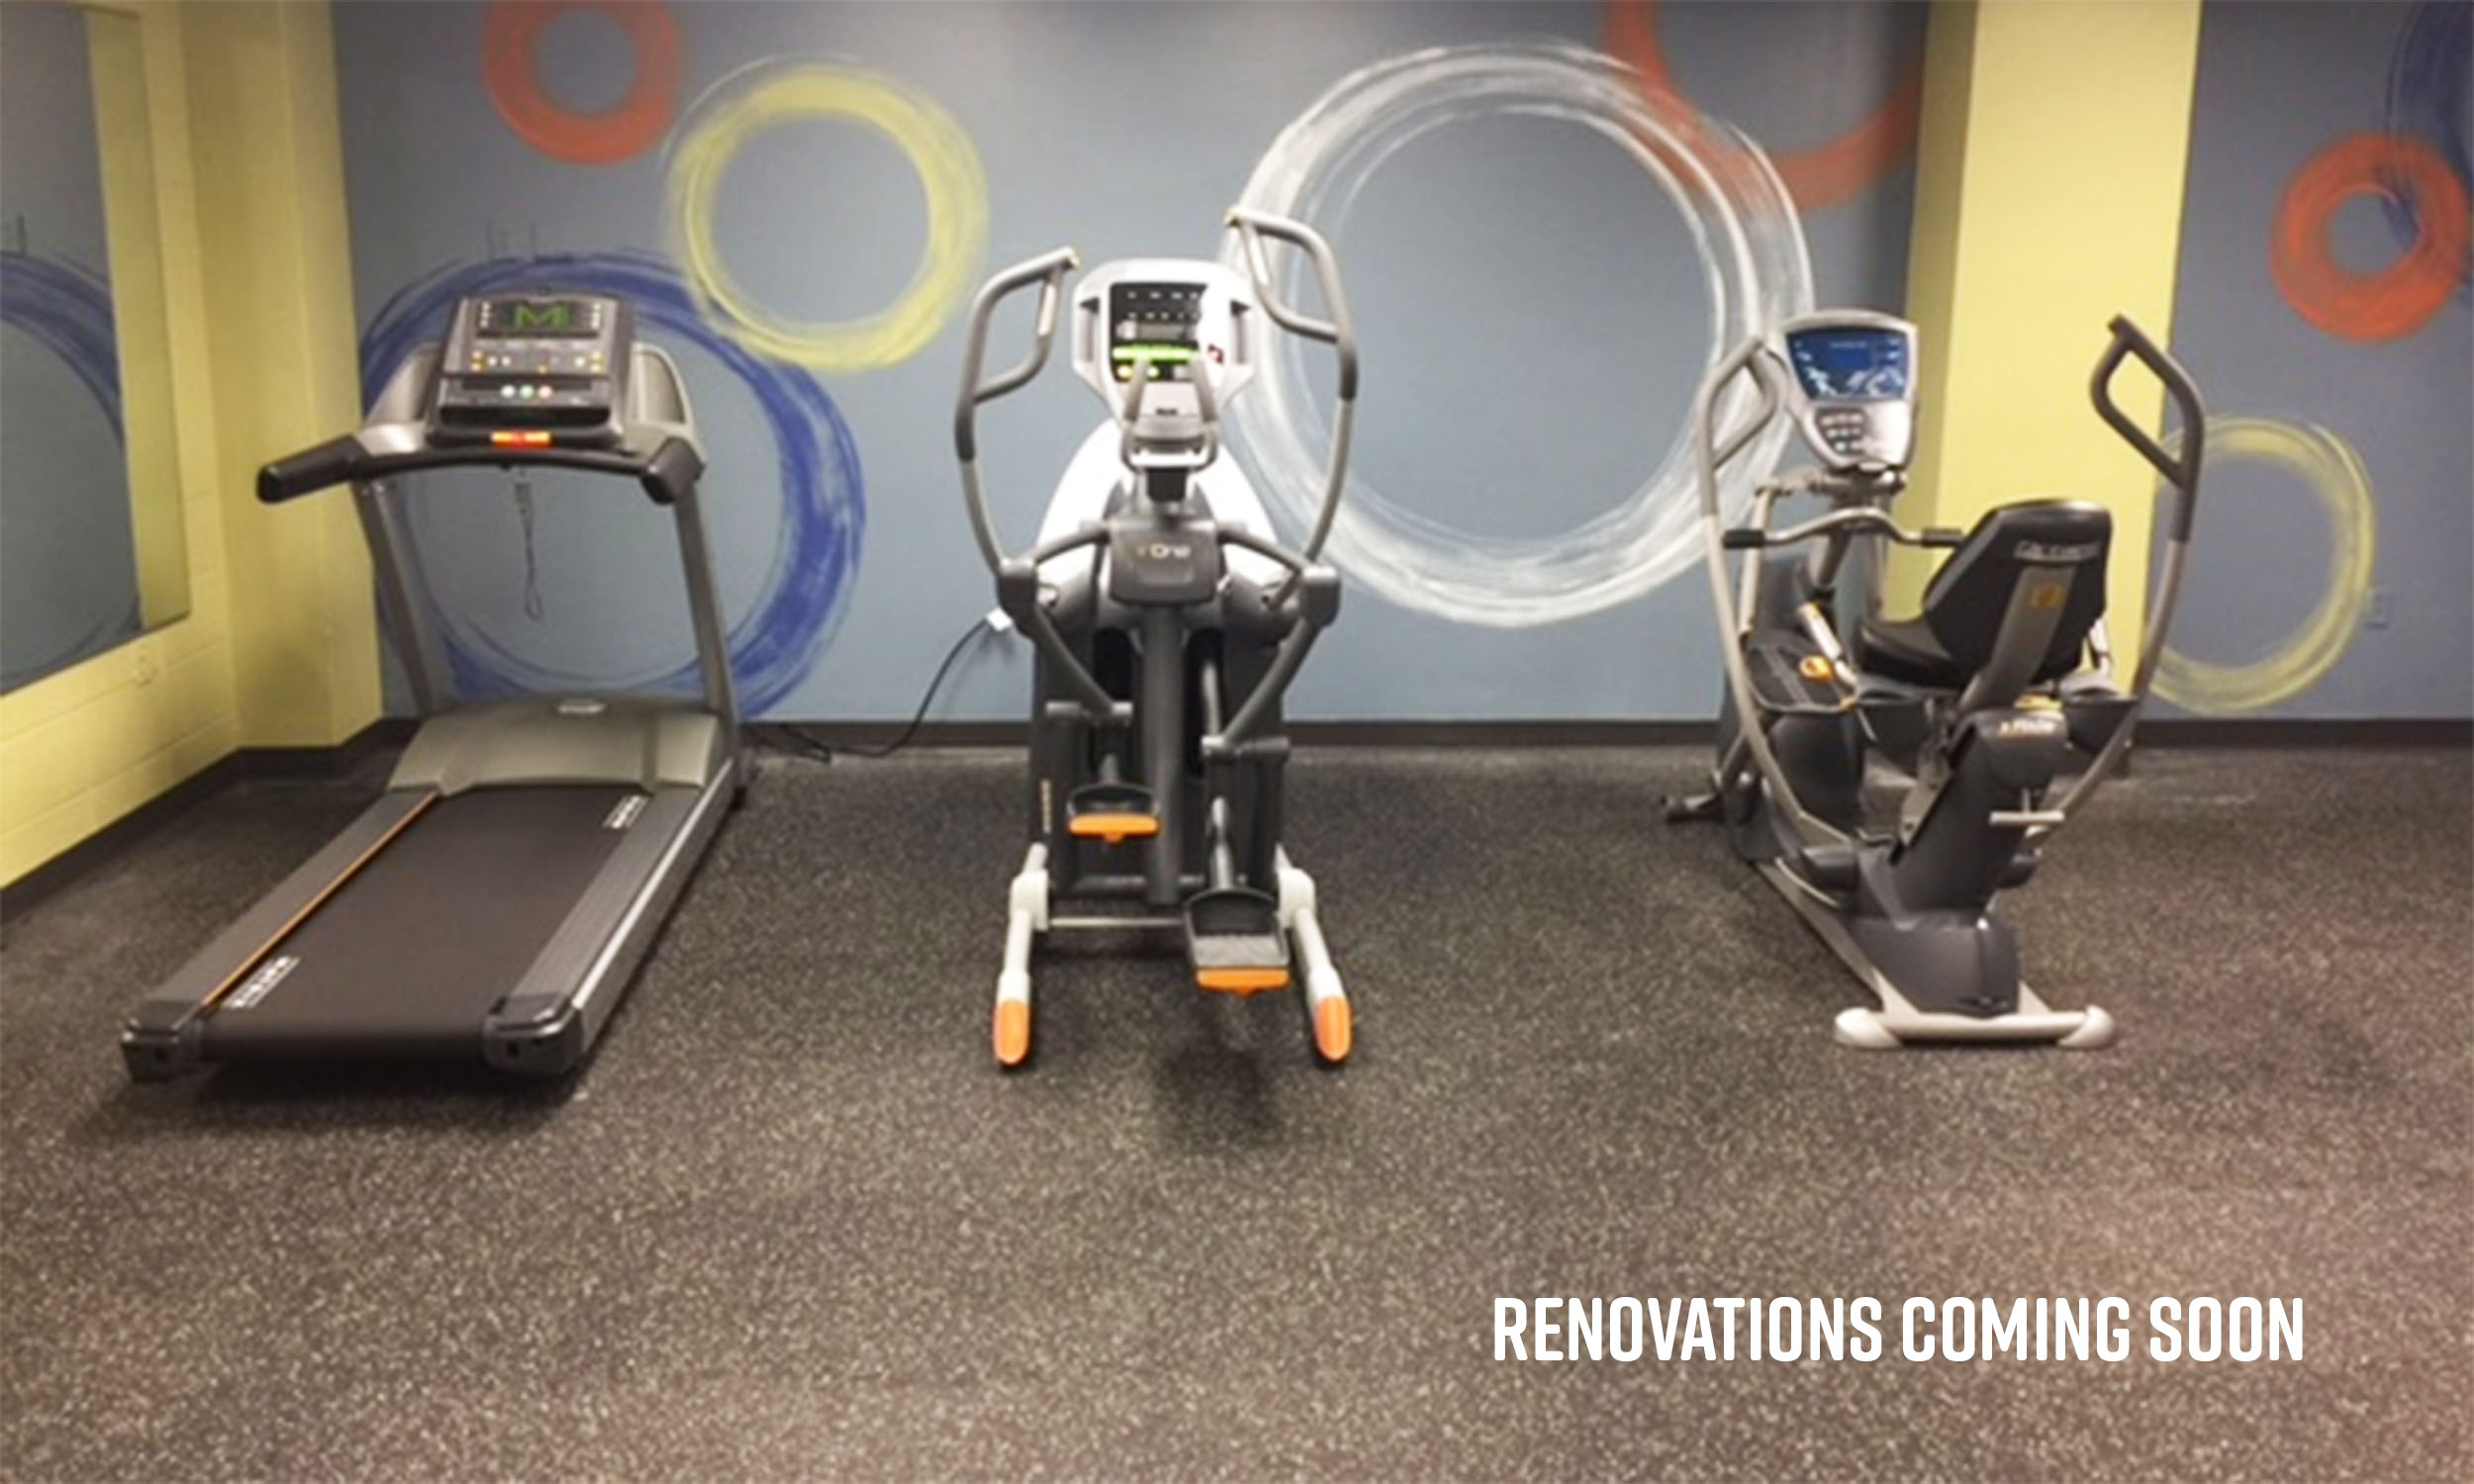 GV Fitness Center Renovations Coming Soon